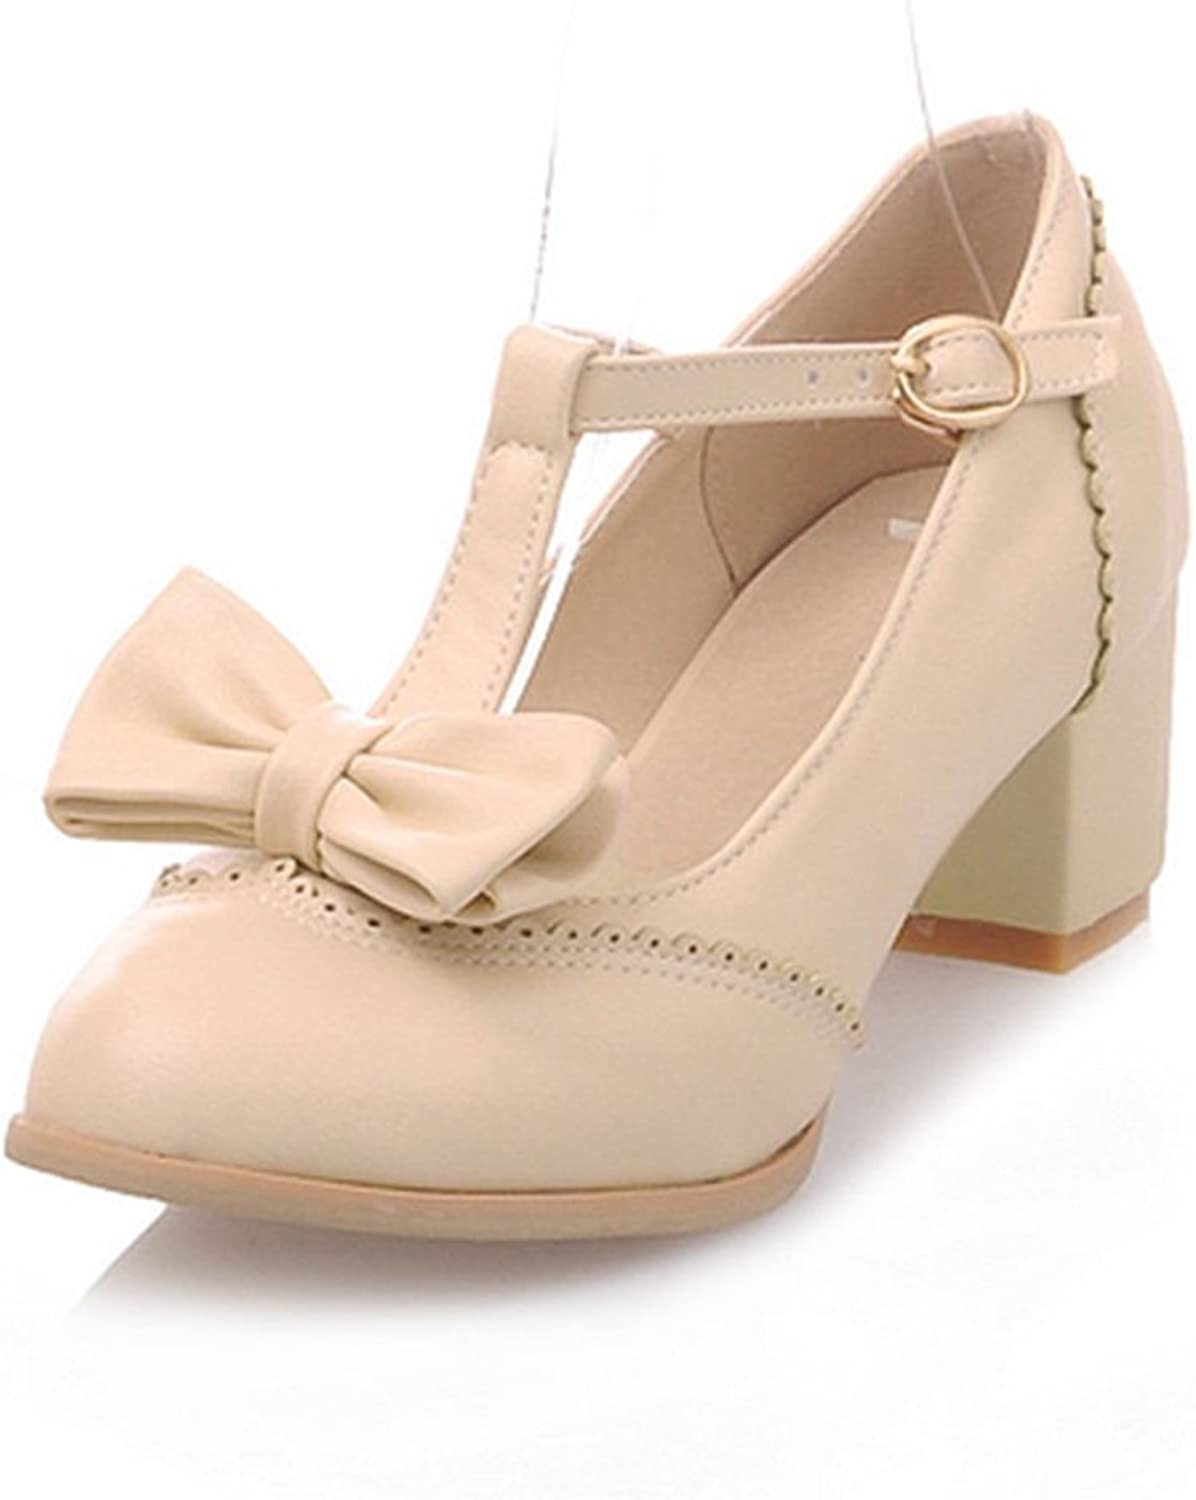 York Zhu Women Pumps, Fashion T-Strap Bow-tie Round Toe Square Heel Wedding shoes Beige